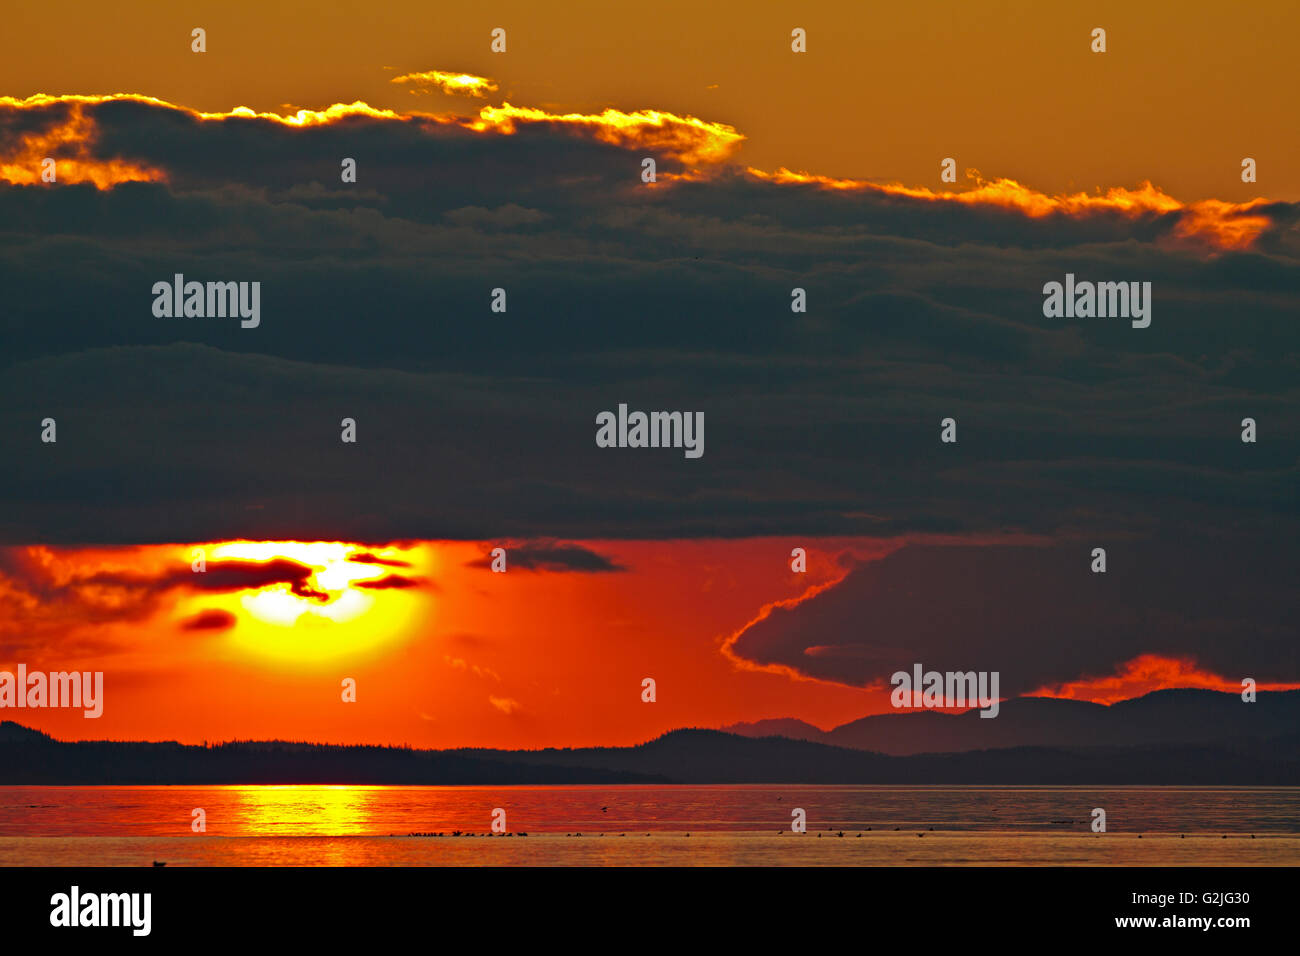 Sunset with cloud cover over Cormorant Island and vancouver Island North, British Columbia, Canada. - Stock Image